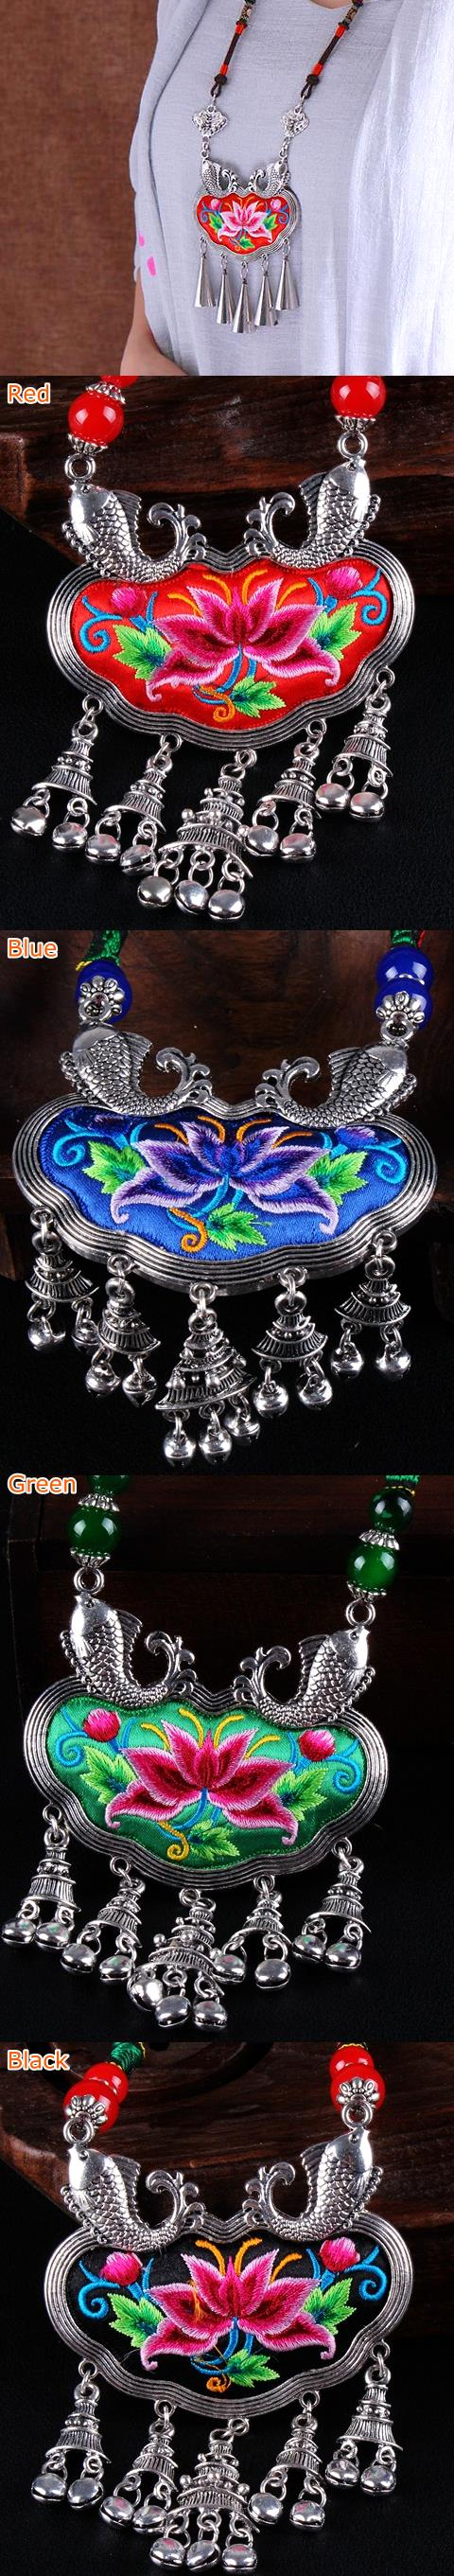 Handmade Ethnic Embroidery Necklace